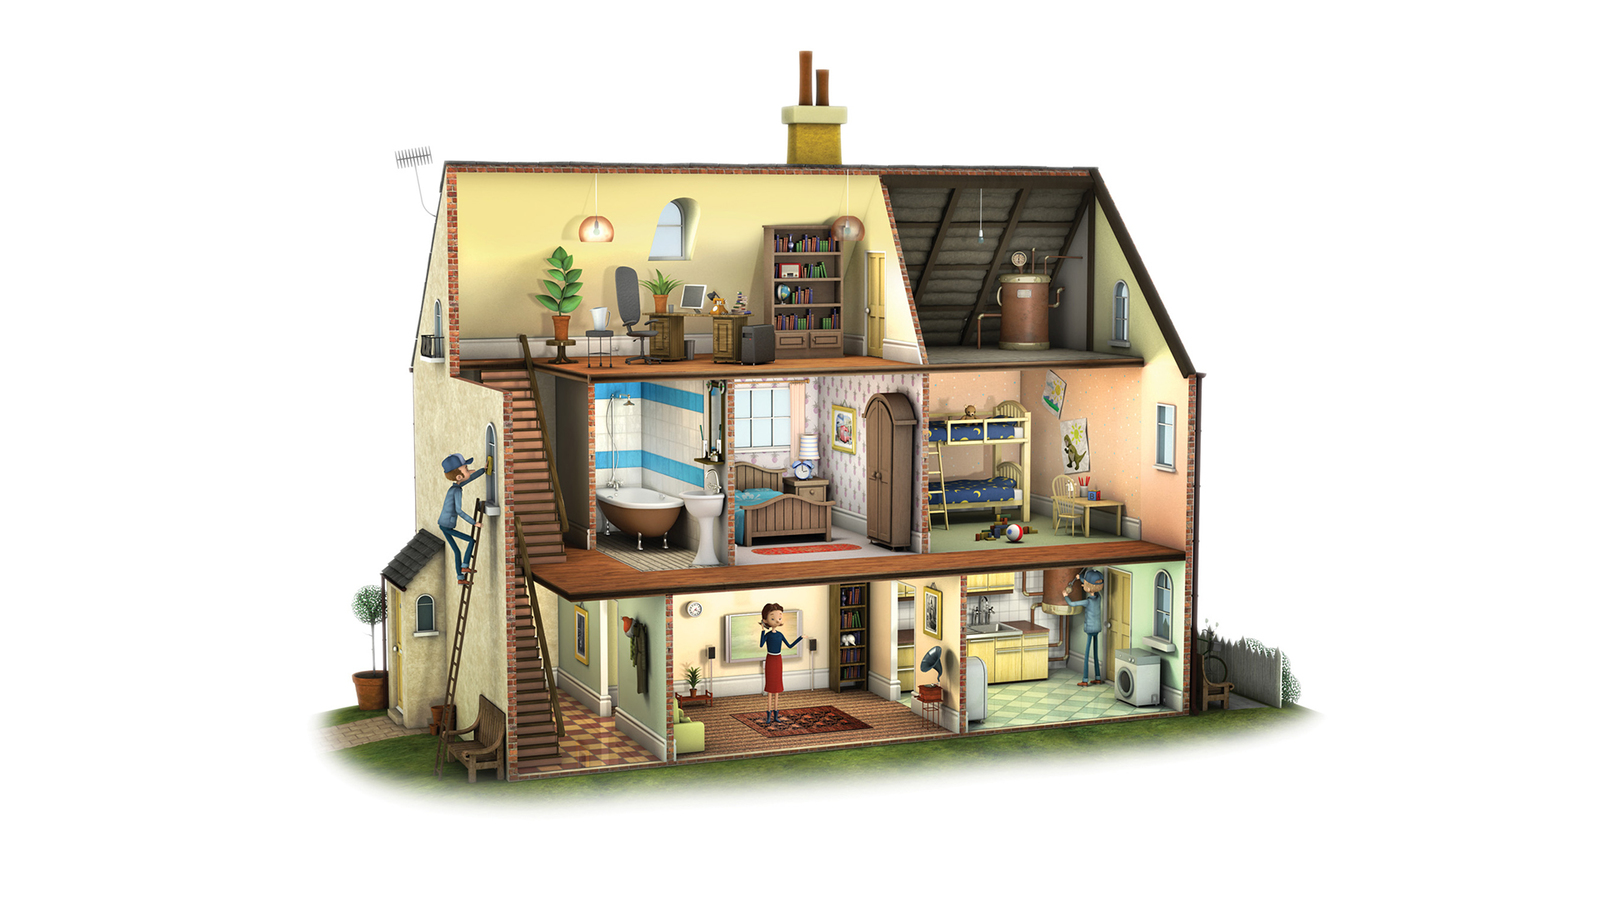 3d illustration of house cut away with people inside